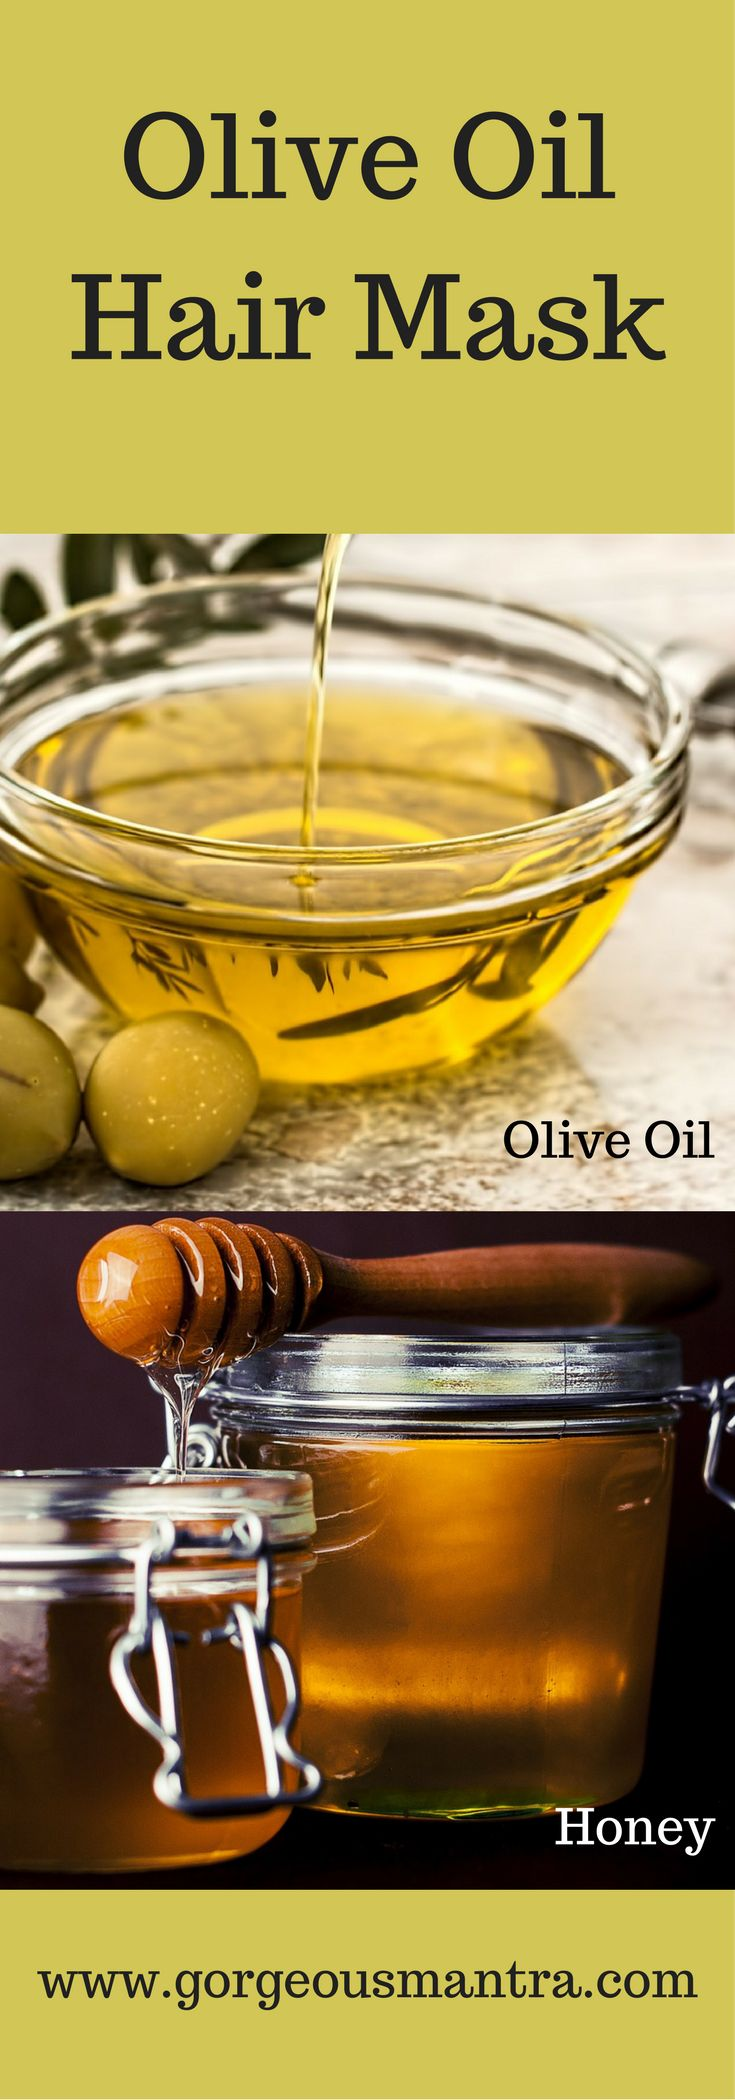 Olive oil hair masks are great for nourishing hair. This hair mask is made with olive oil and honey which are excellent for treating dryness . Hair feels super smooth and radiant after use!